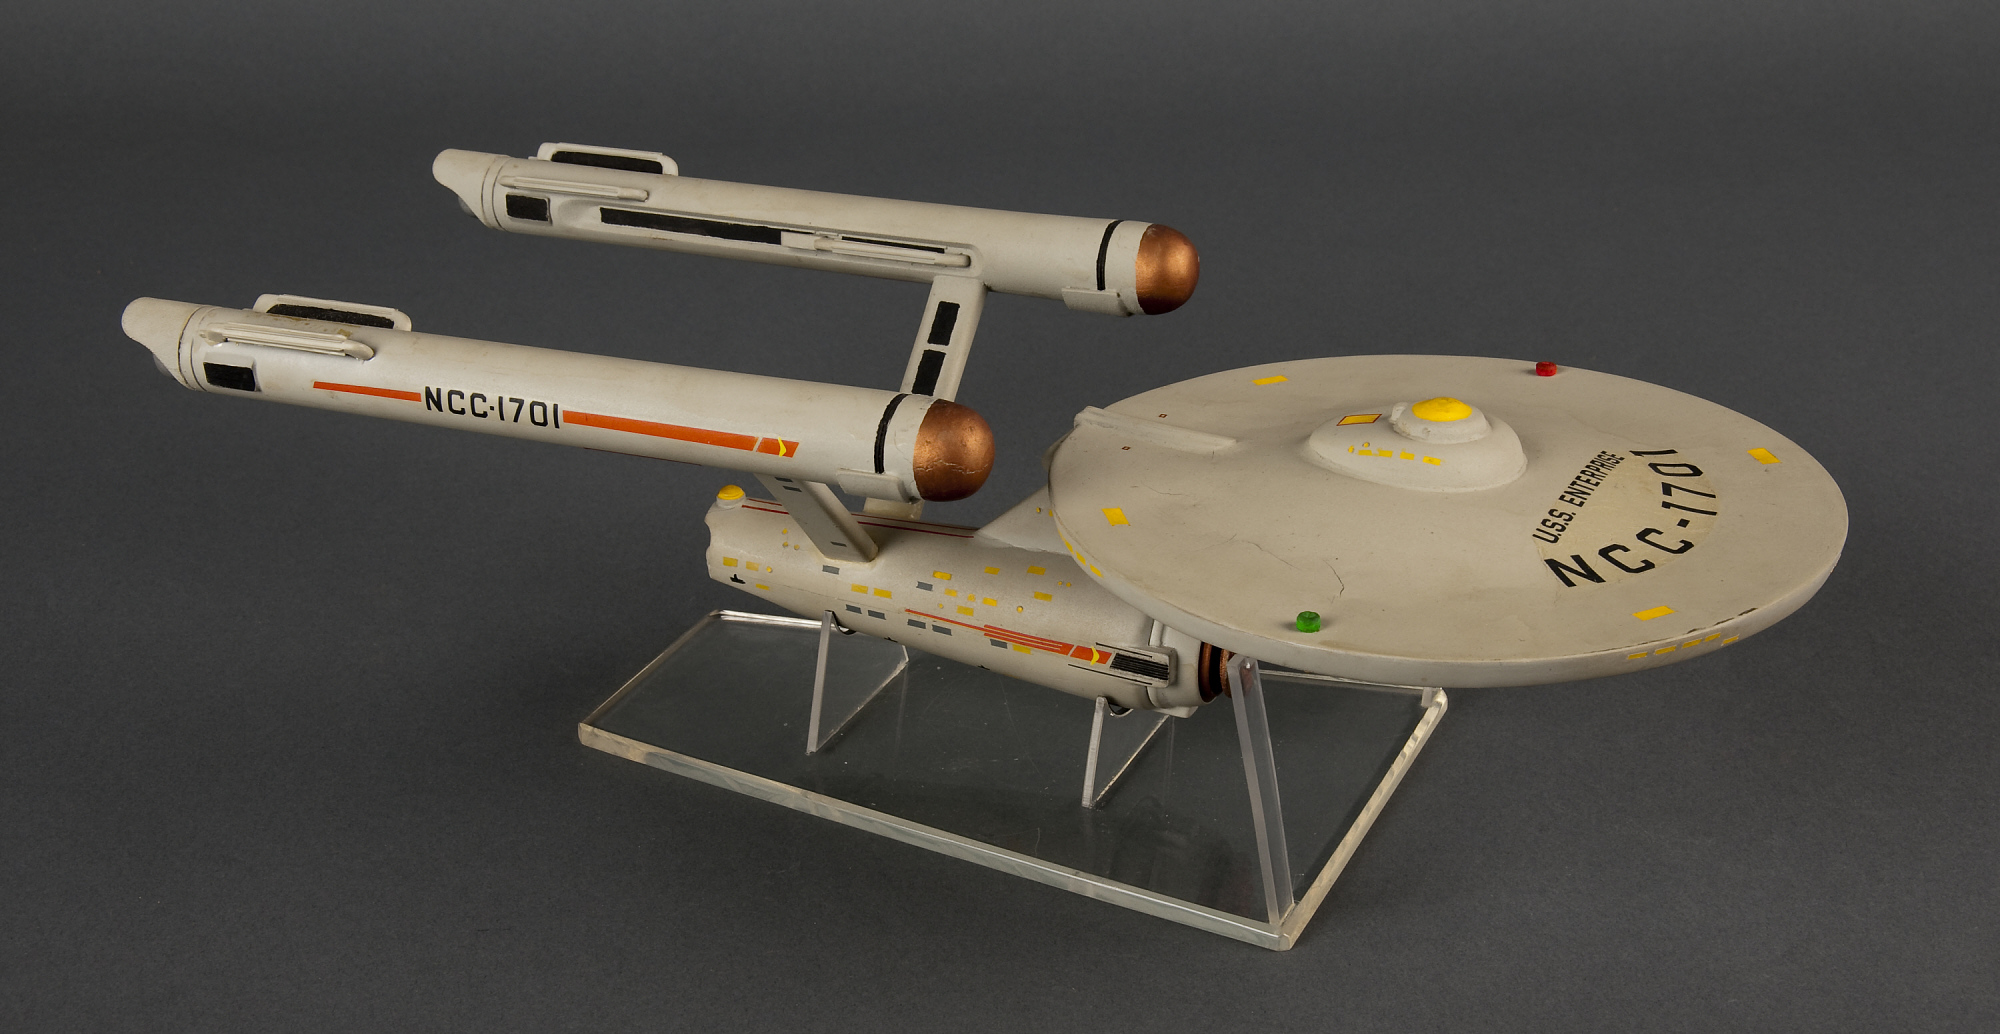 images for Stand, Model, Star Trek, Starship Enterprise